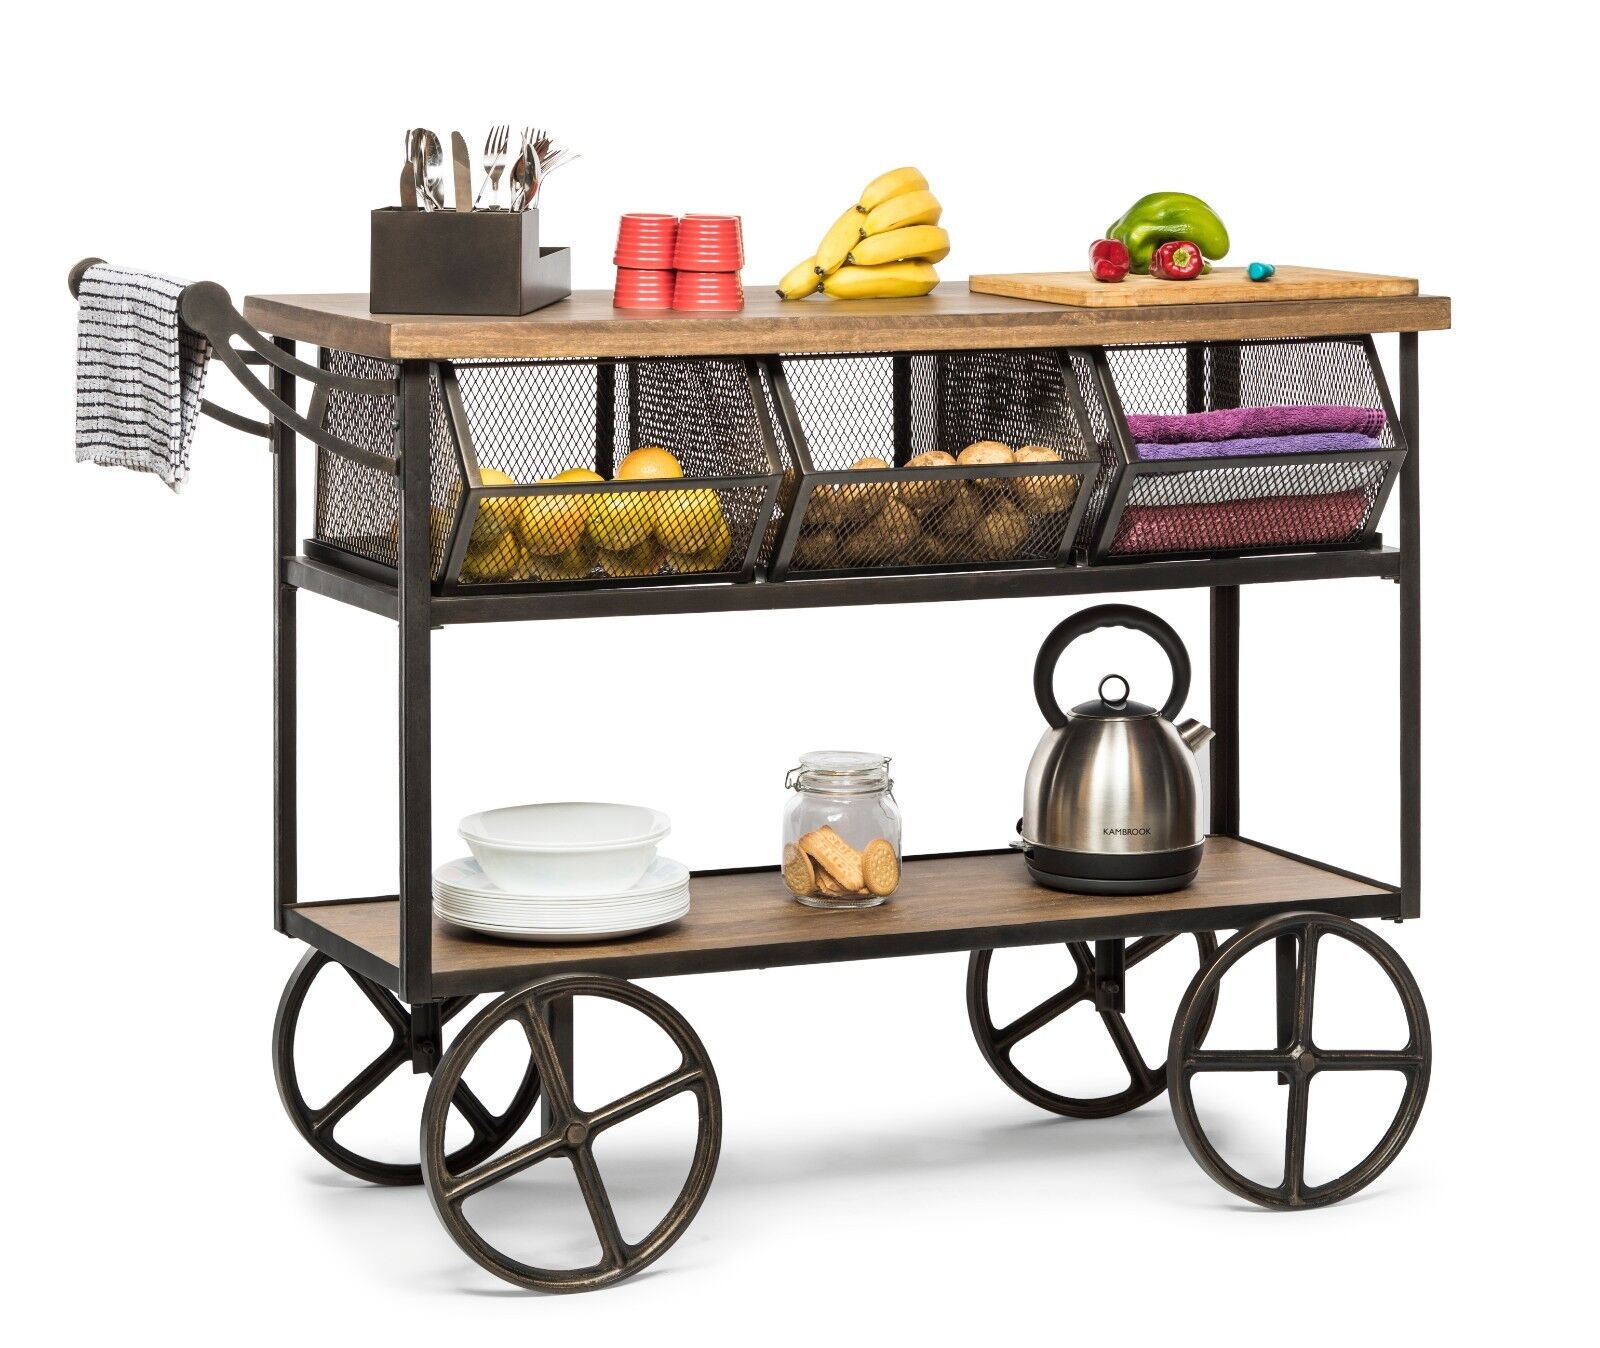 Kitchen Trolley Island Bench Storage Organiser Drawer 3 Shelves On Wheels Ebay